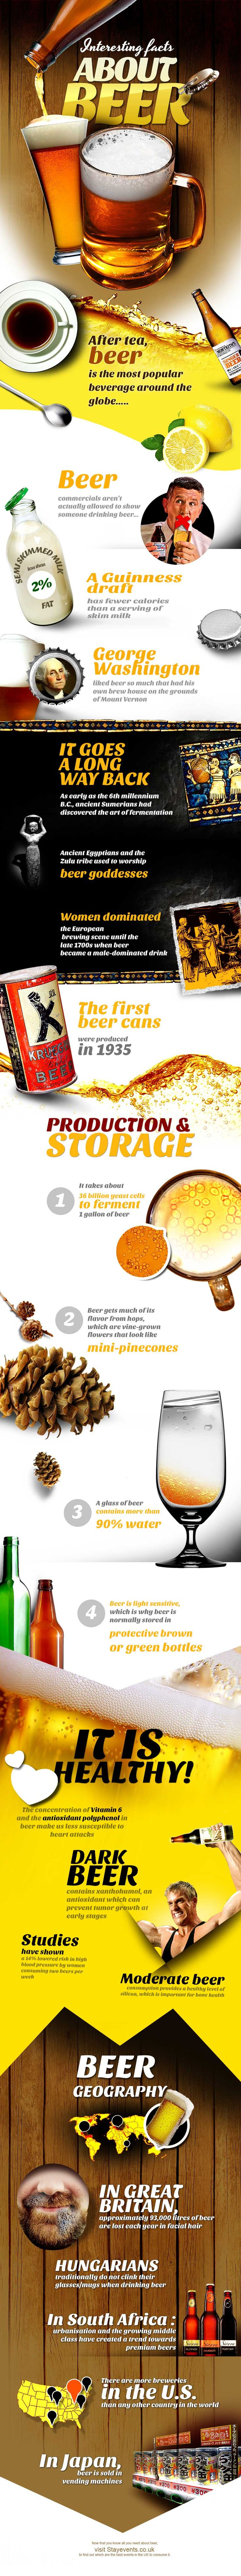 Some Cool Infographics About Beer | Earthly Mission